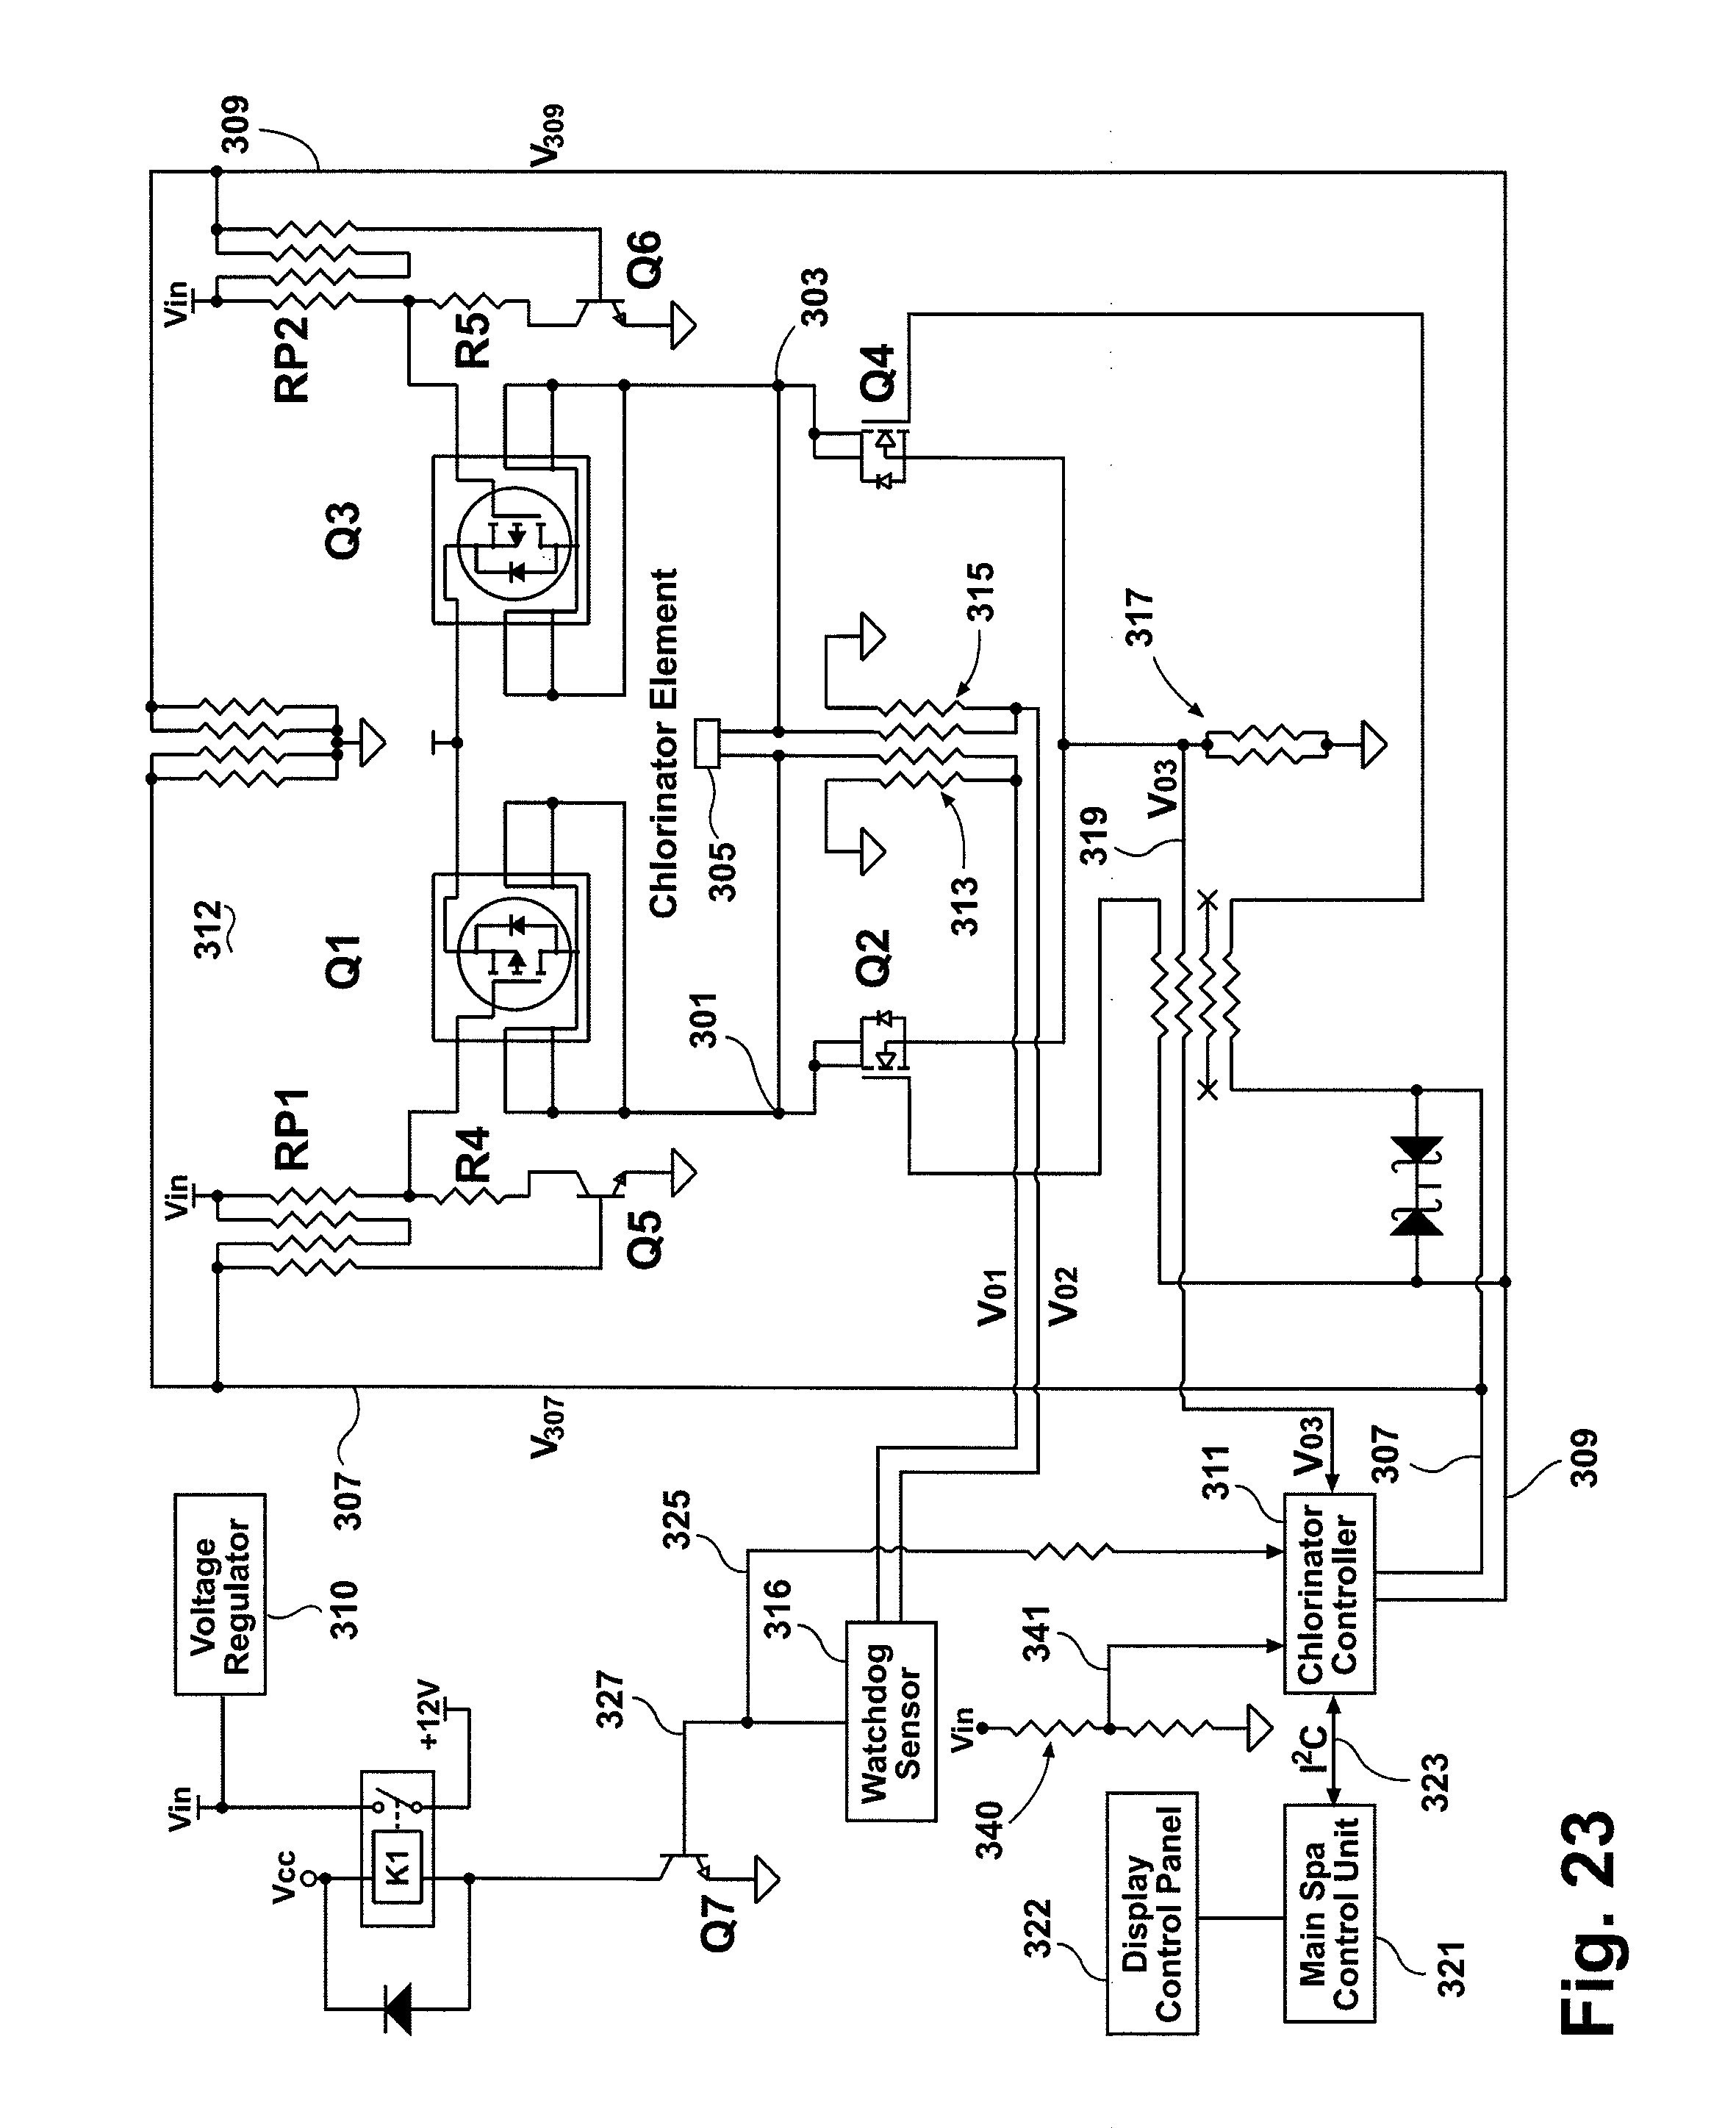 2 Pole Gfci Breaker Wiring Diagram | Wiring Diagram - 2 Pole Gfci Breaker Wiring Diagram